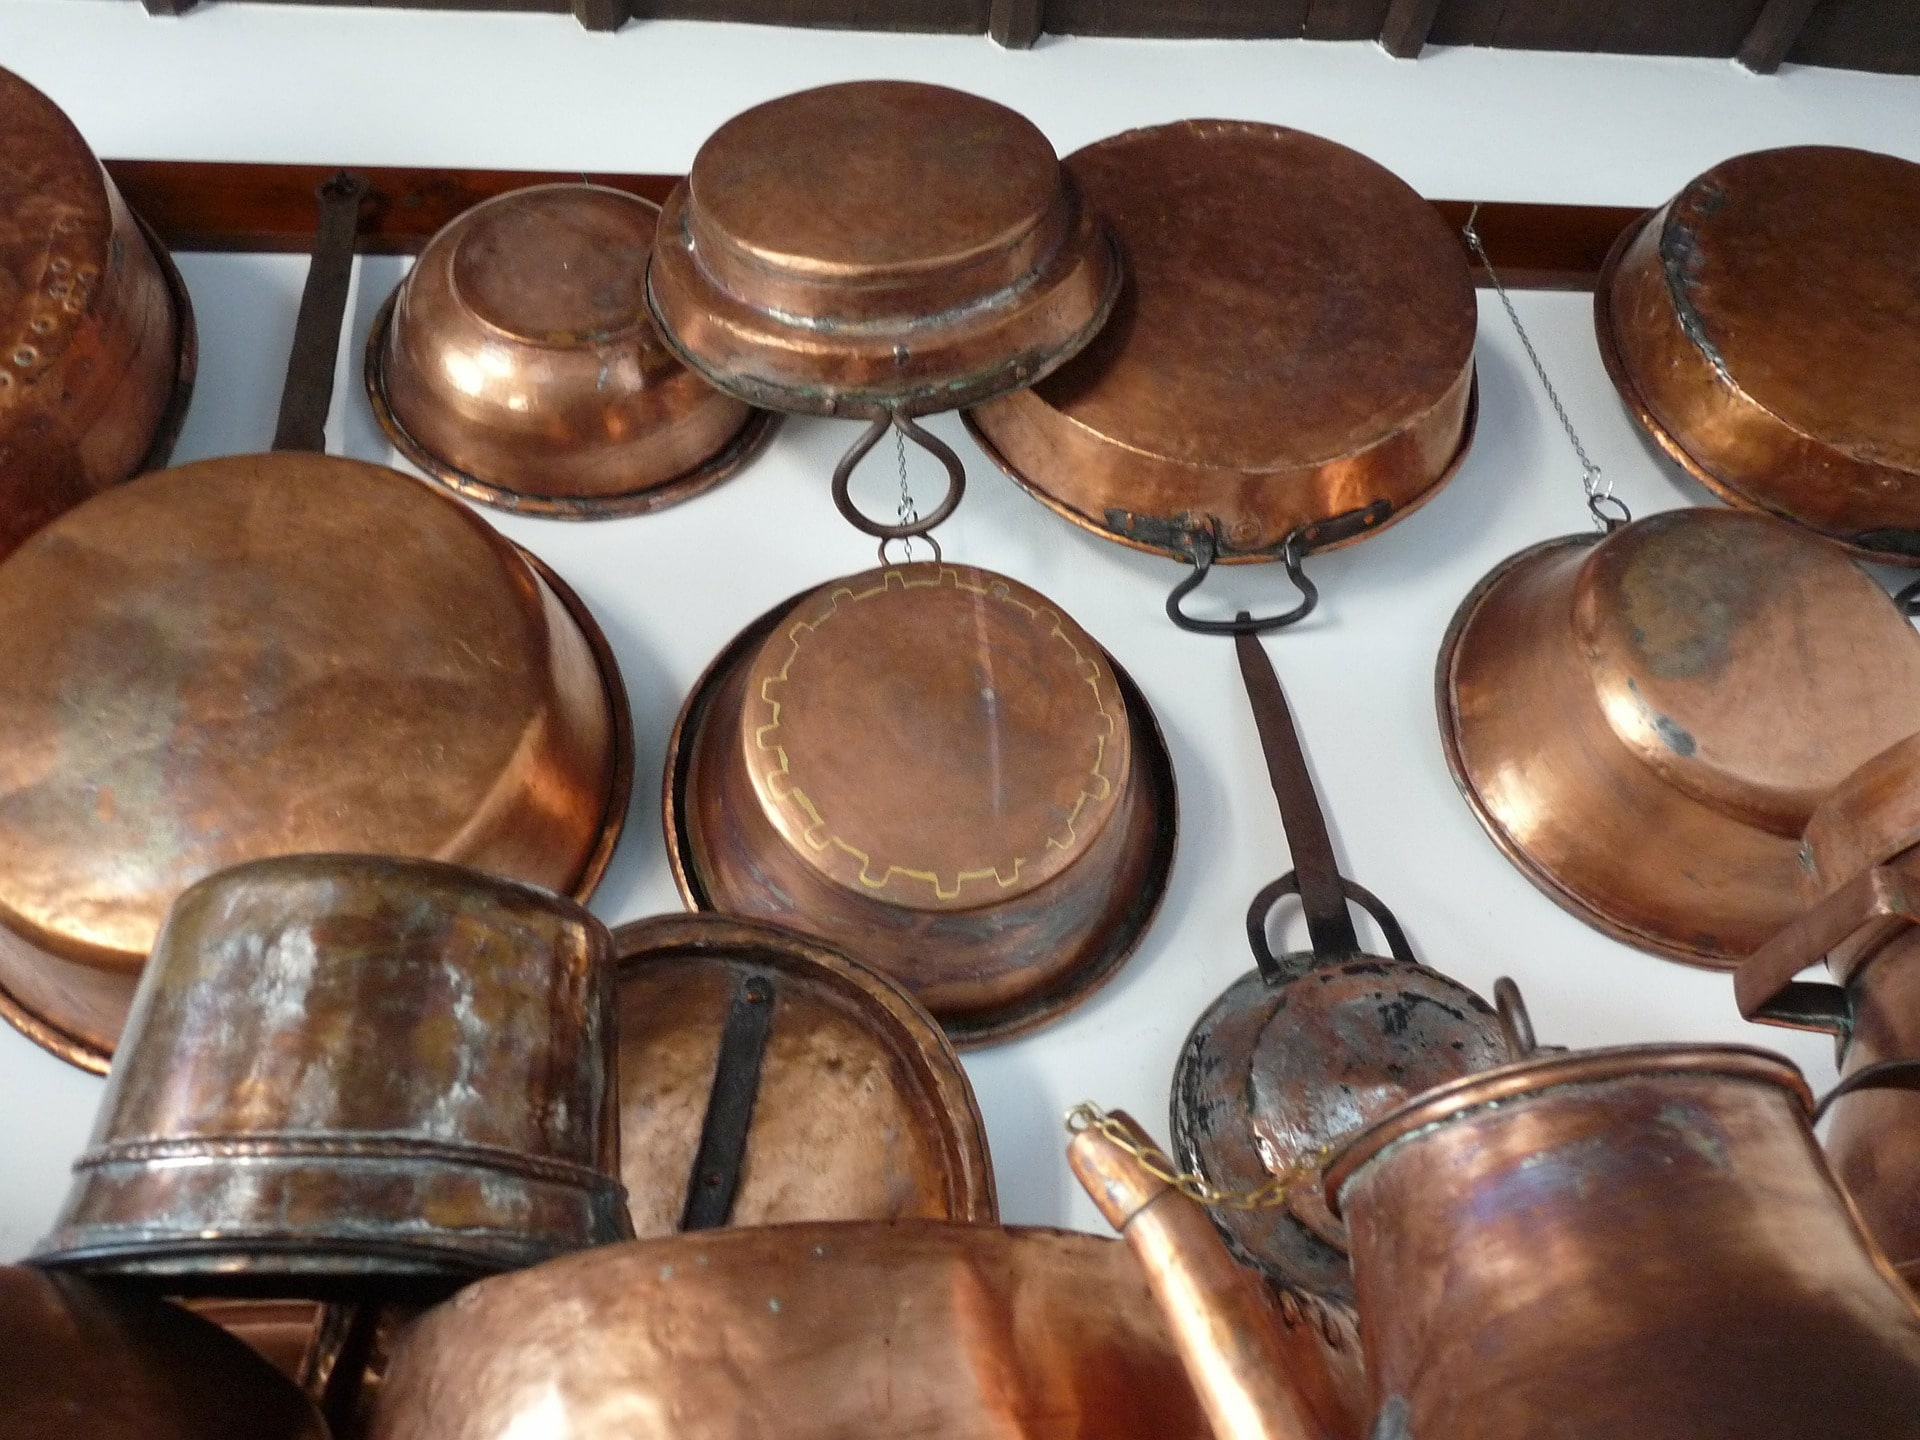 copper cookware vs stainless steel, copper cooking ware